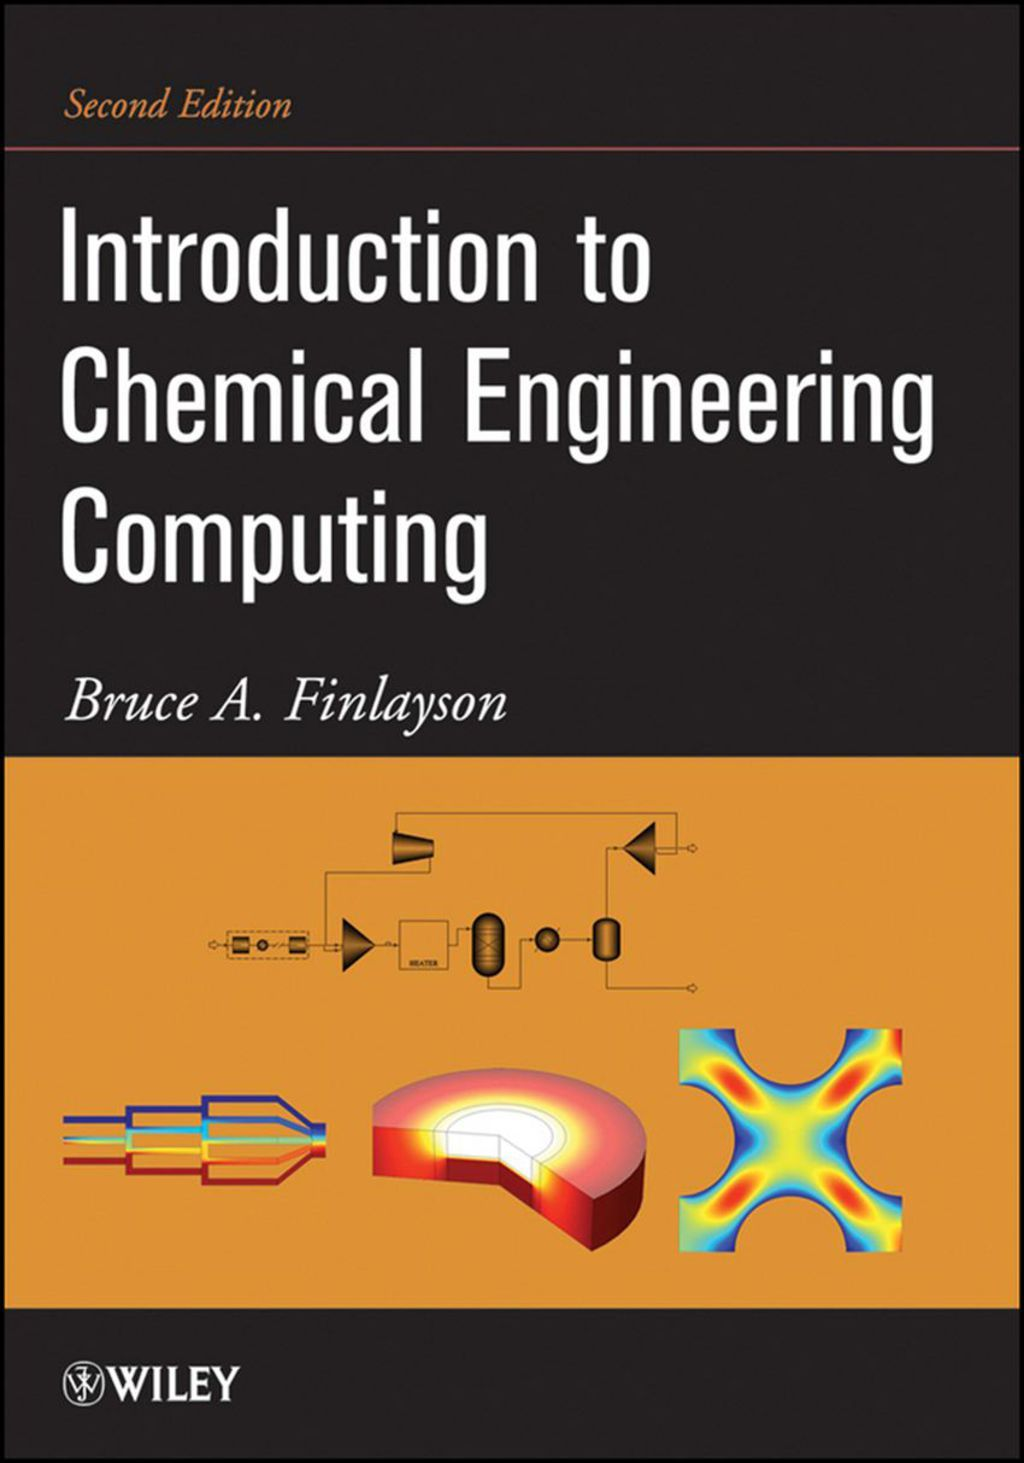 Introduction To Chemical Engineering Ebook